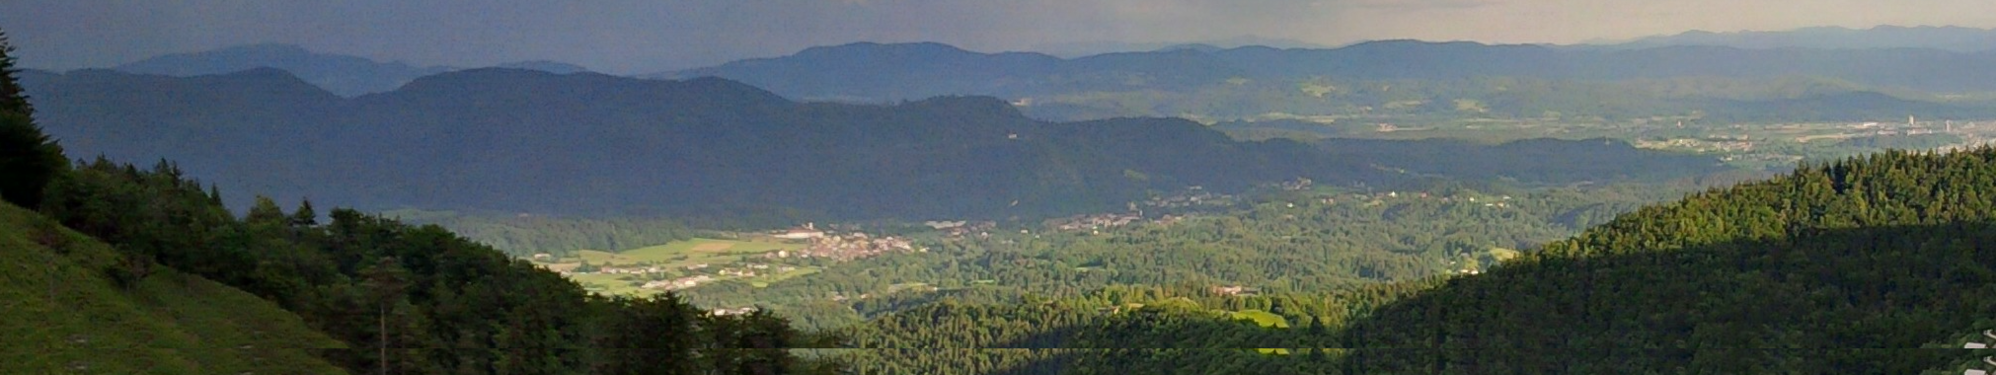 Kamnik - panoramic view towards the south.png